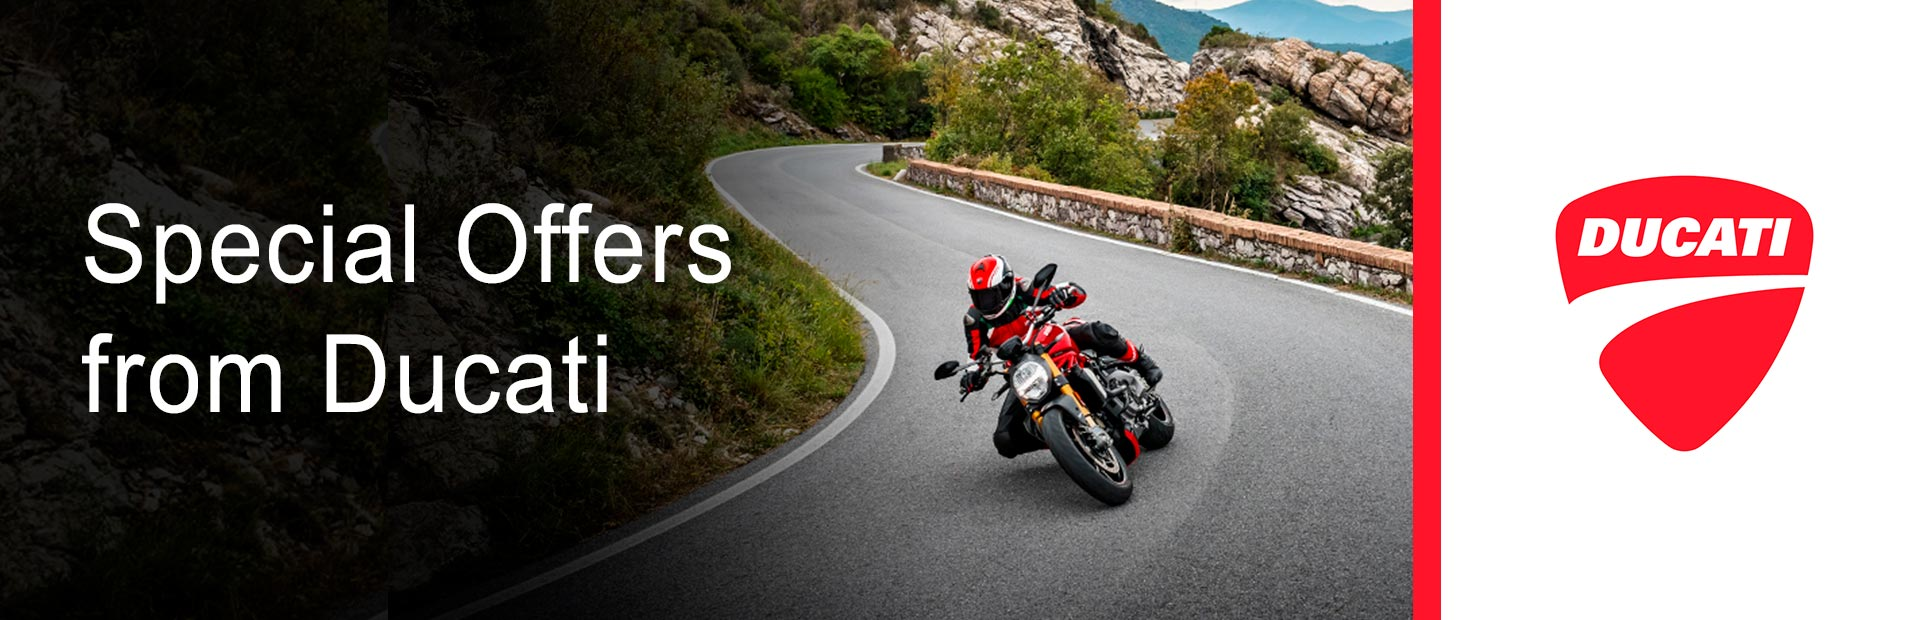 Ducati: Special Offers from Ducati